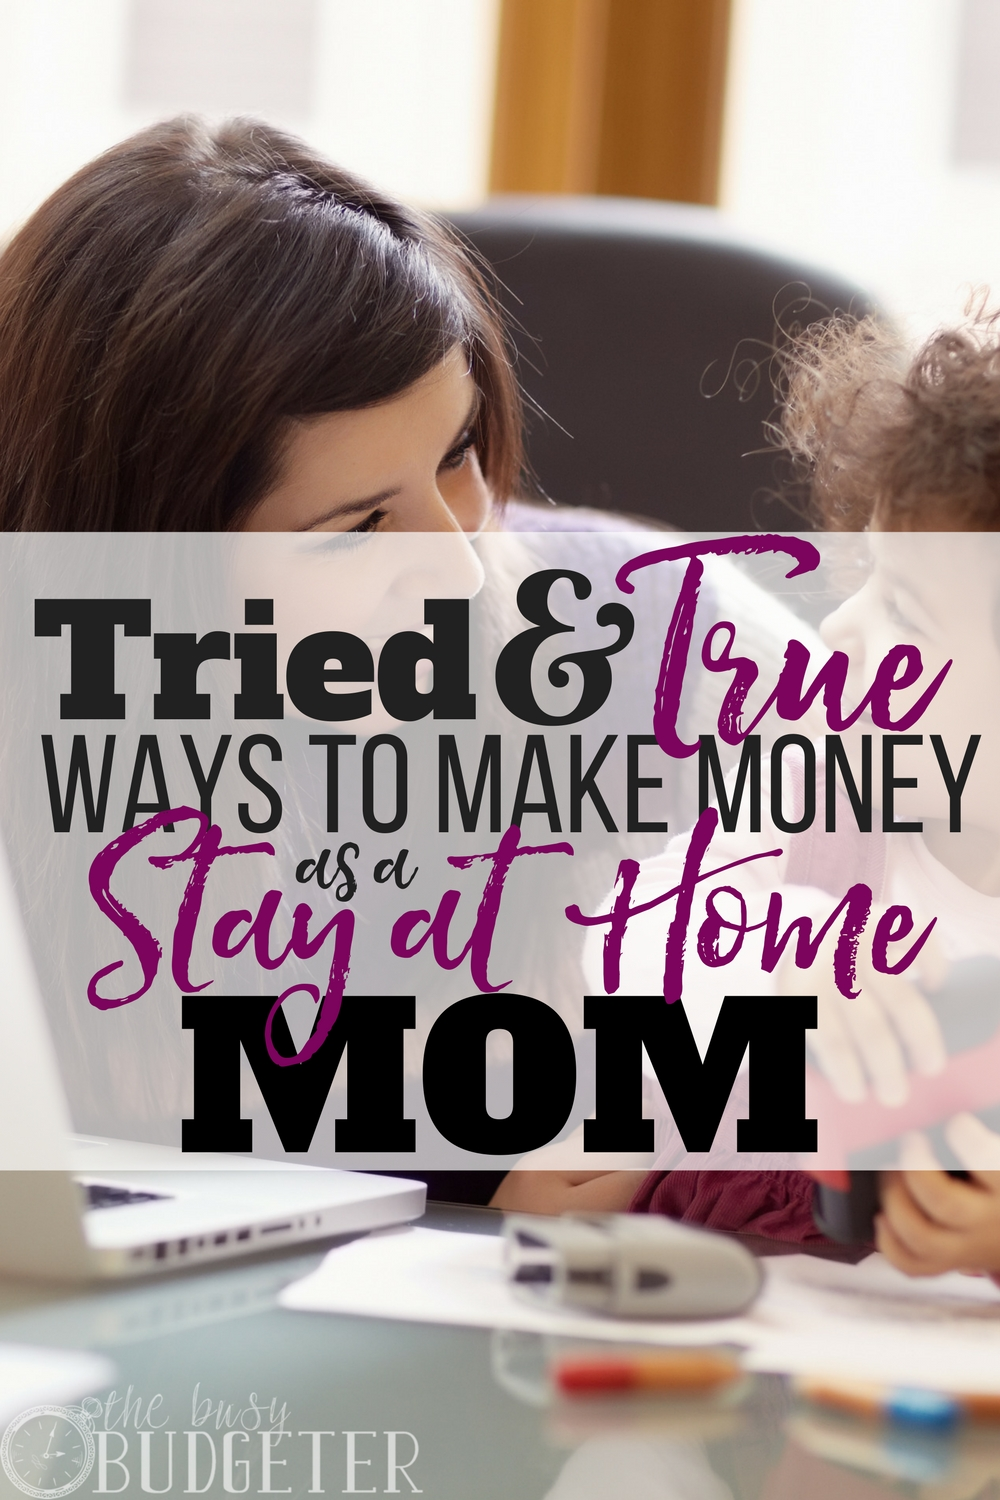 As a mother, I'm always looking for ways to make money as a stay at home mom. I didn't think it was possible to earn a decent income while staying at home with the kids, but thanks to this post, I'm eager to try a few of these ideas! This is a great source of creative work ideas for moms! Thank you!